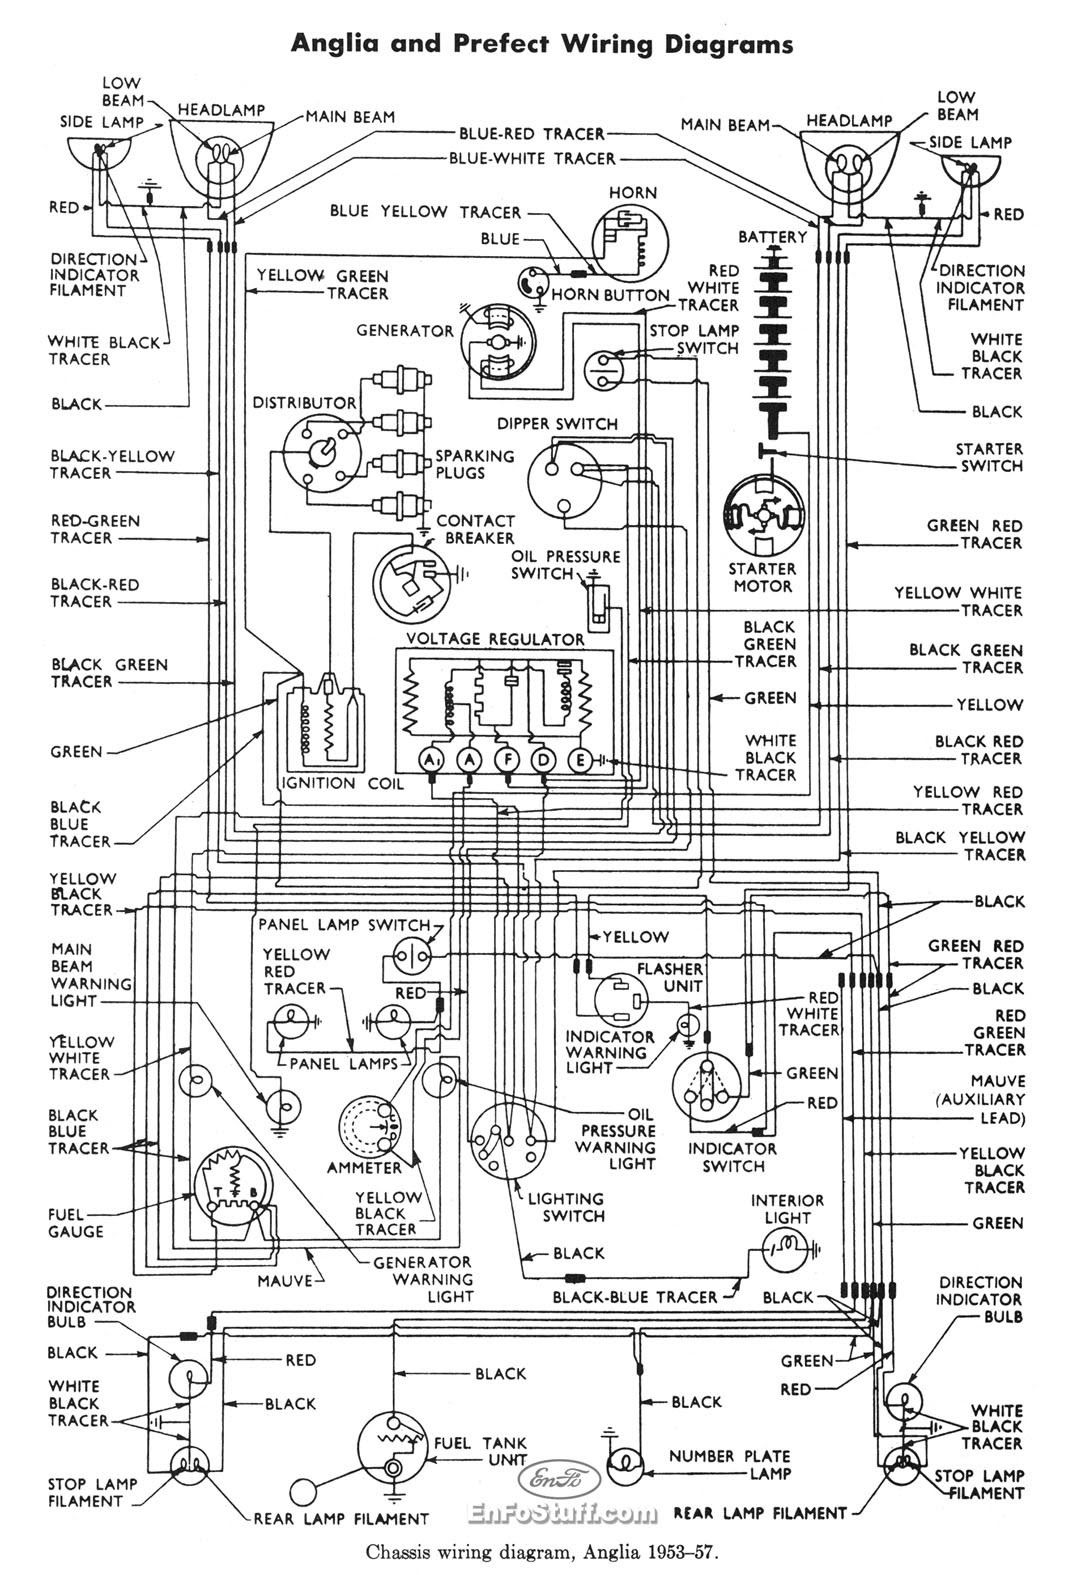 Ford 3000 Distributor Cap Wiring Diagram